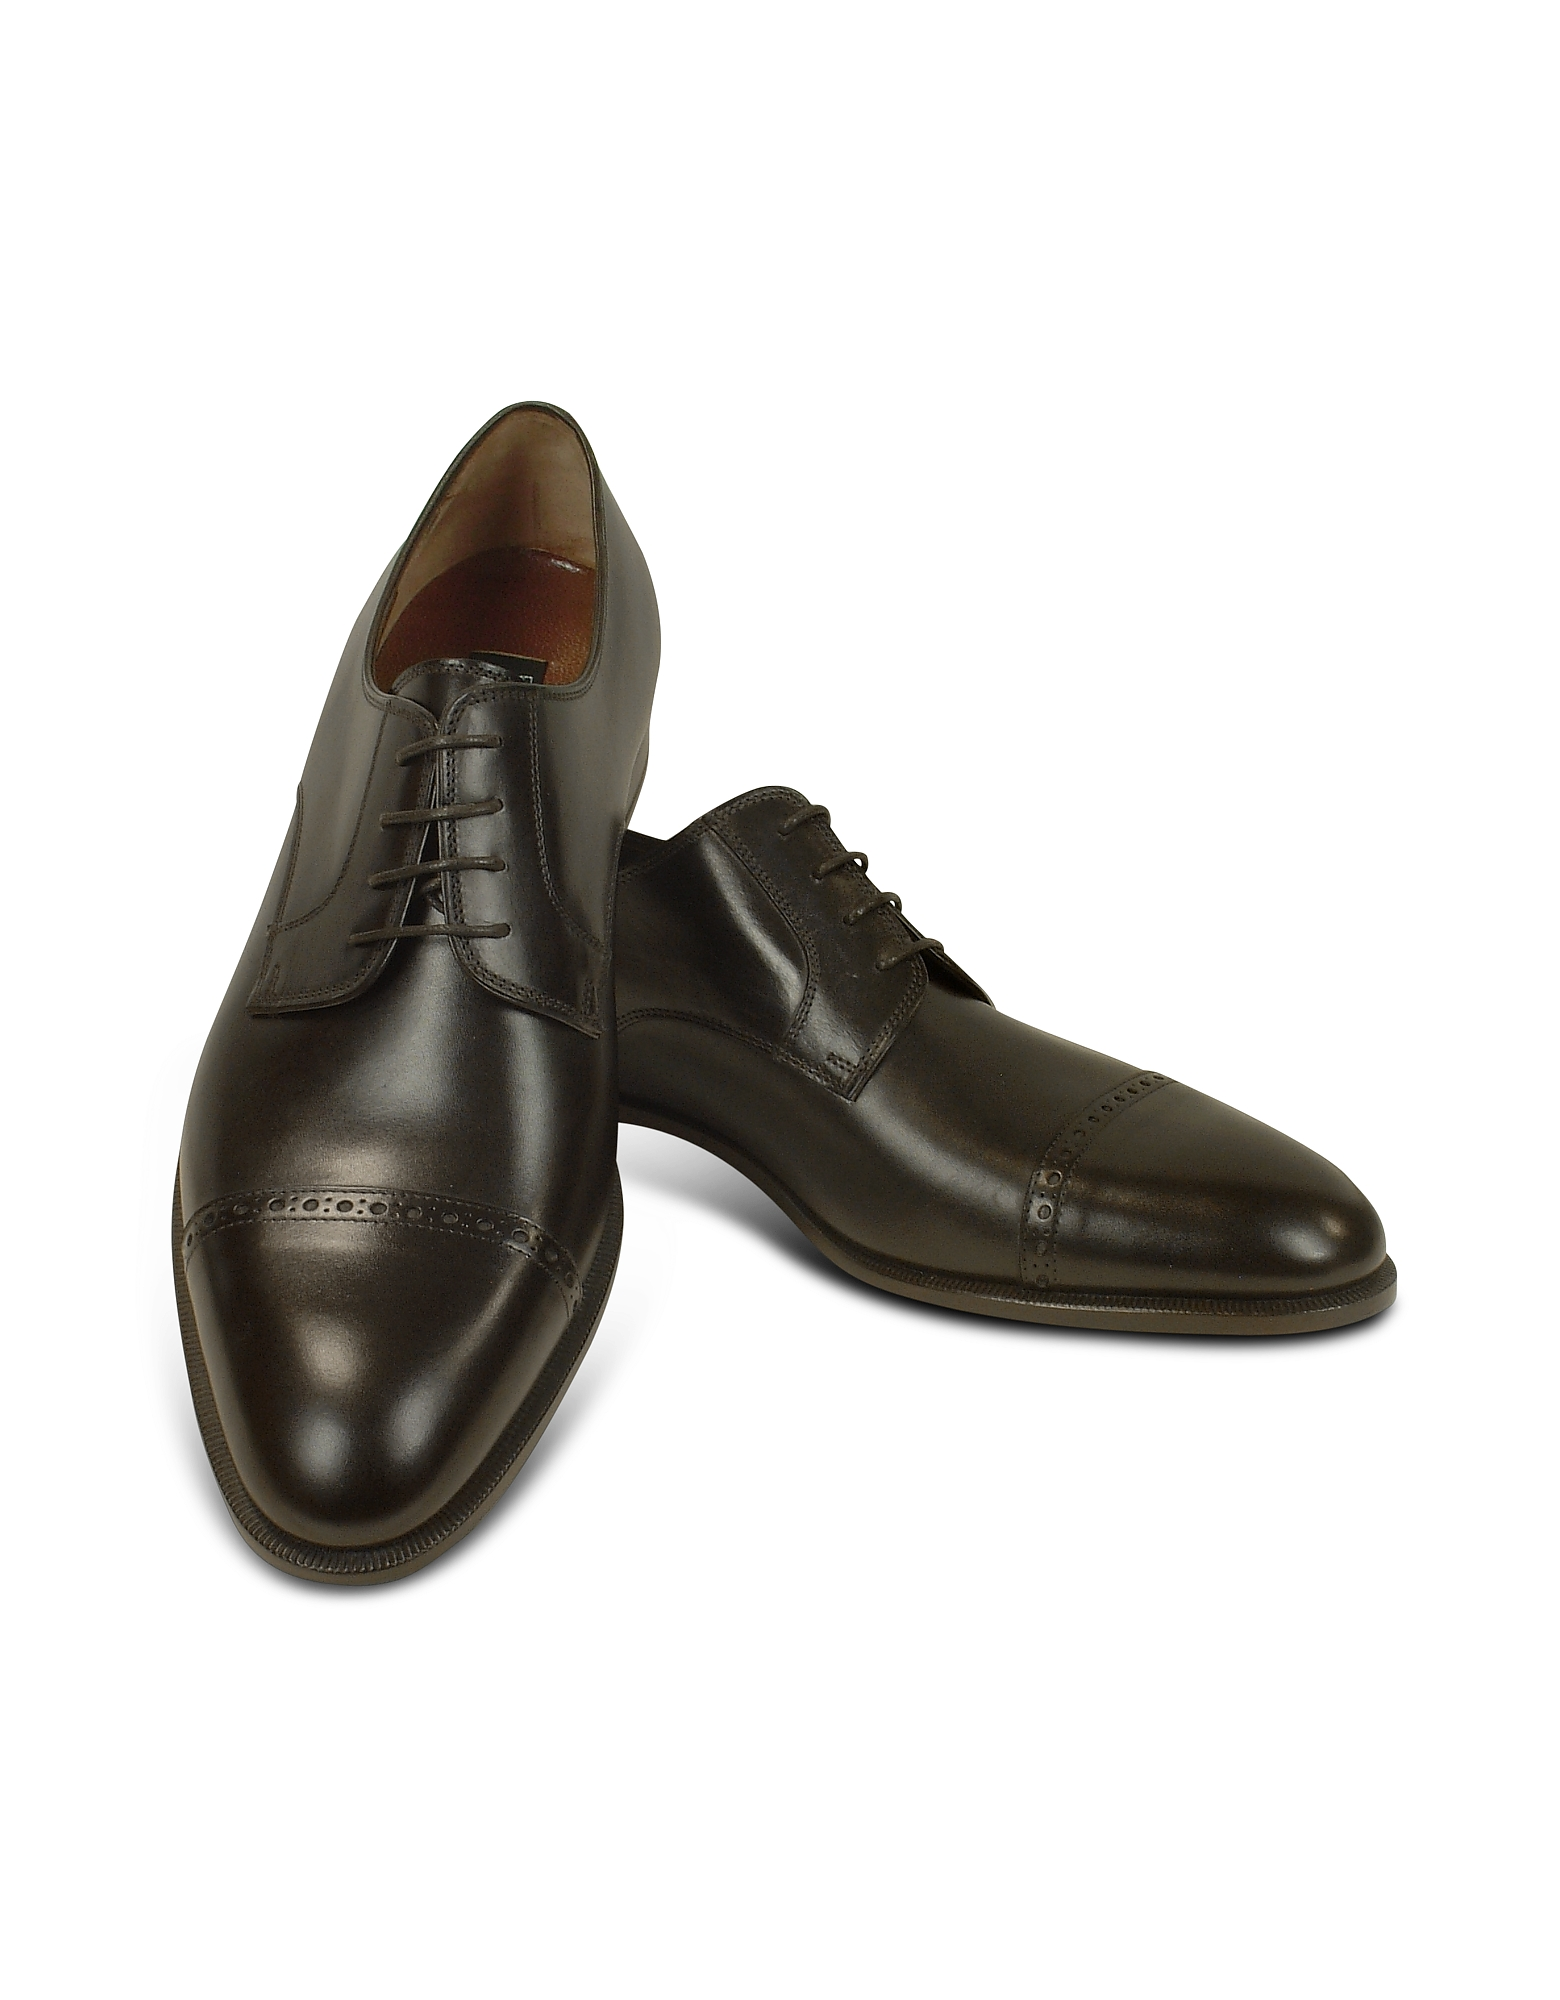 Image of Fratelli Rossetti Designer Shoes, Dark Brown Calf Leather Cap Toe Oxford Shoes